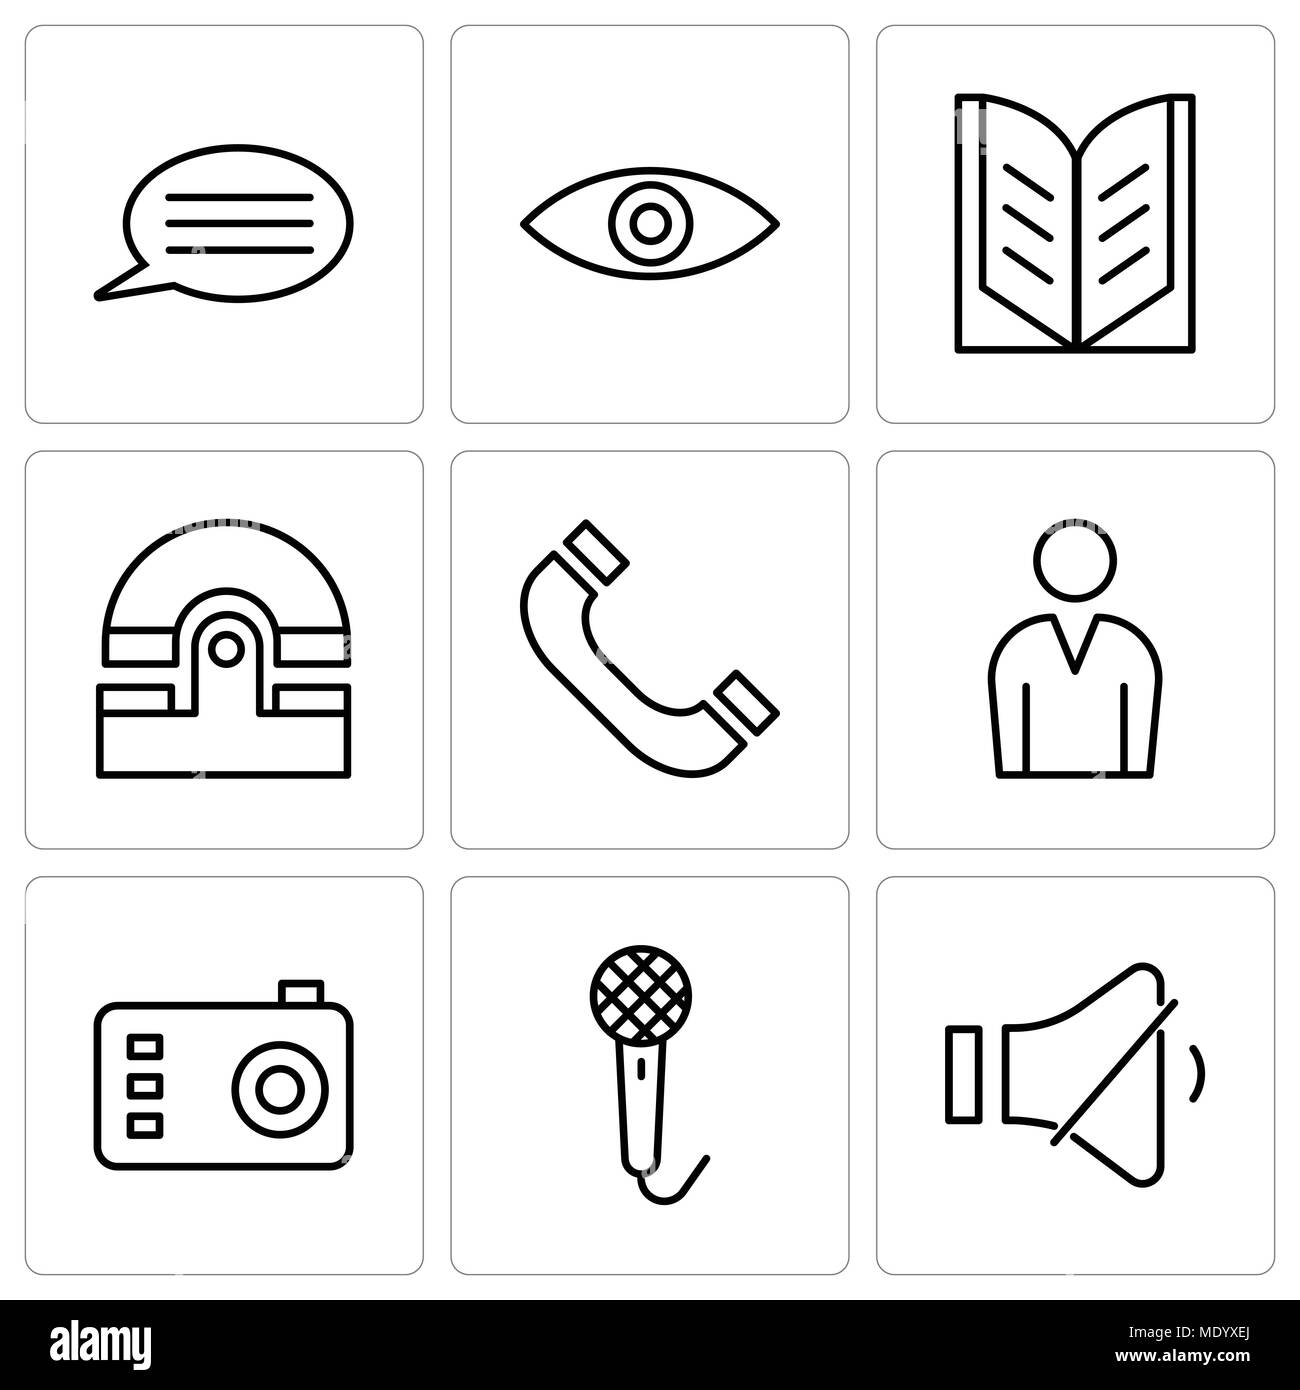 Set Of 9 Simple Editable Icons Such As Volume Control Voice Speech Recorder Photo Camera Male Avatar Headphones Old Phone Open Book Eye Bubble